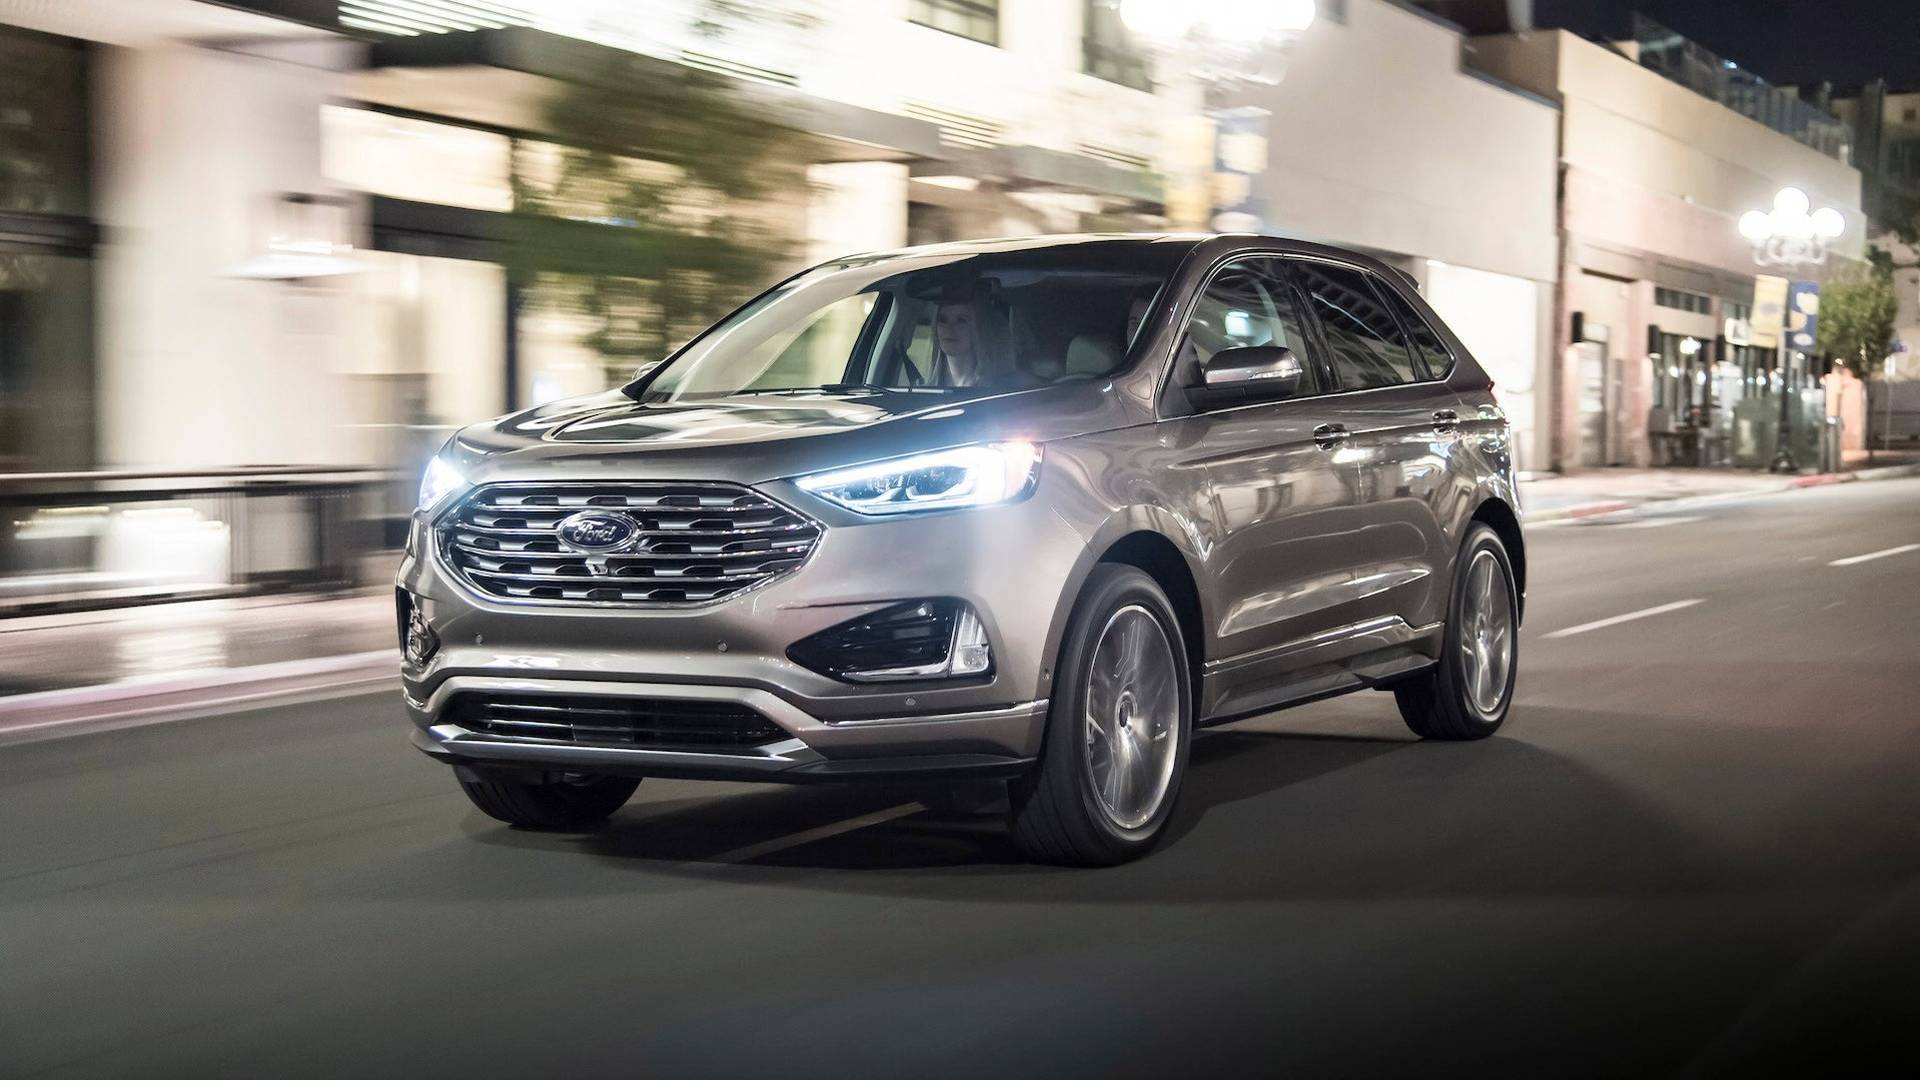 56 All New 2019 Ford Edge Prices